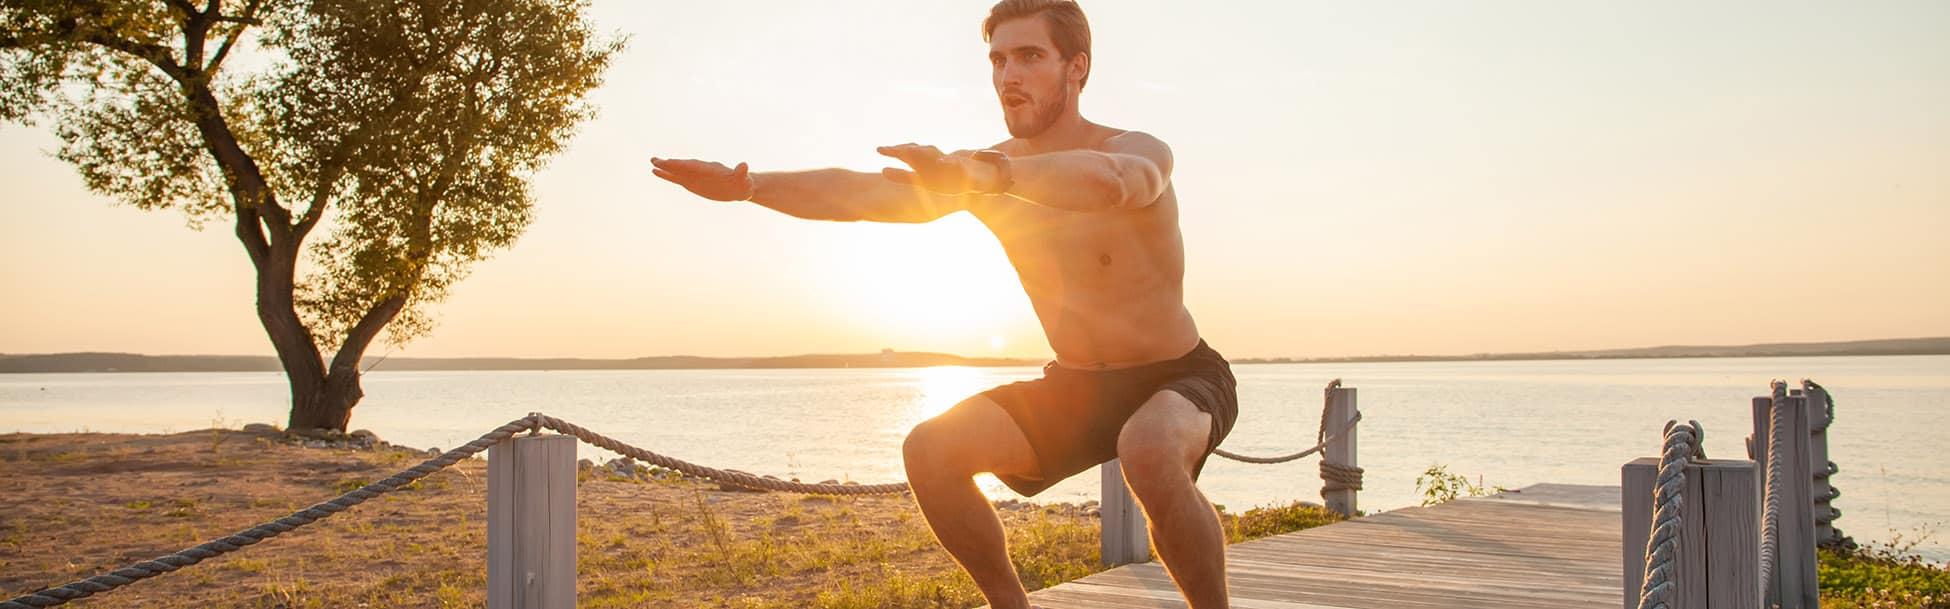 Fitness man training air squat exercise on beach outside. Fit male exercising crossfit outside. Young handsome caucasian male fitness model and instructor outdoors.